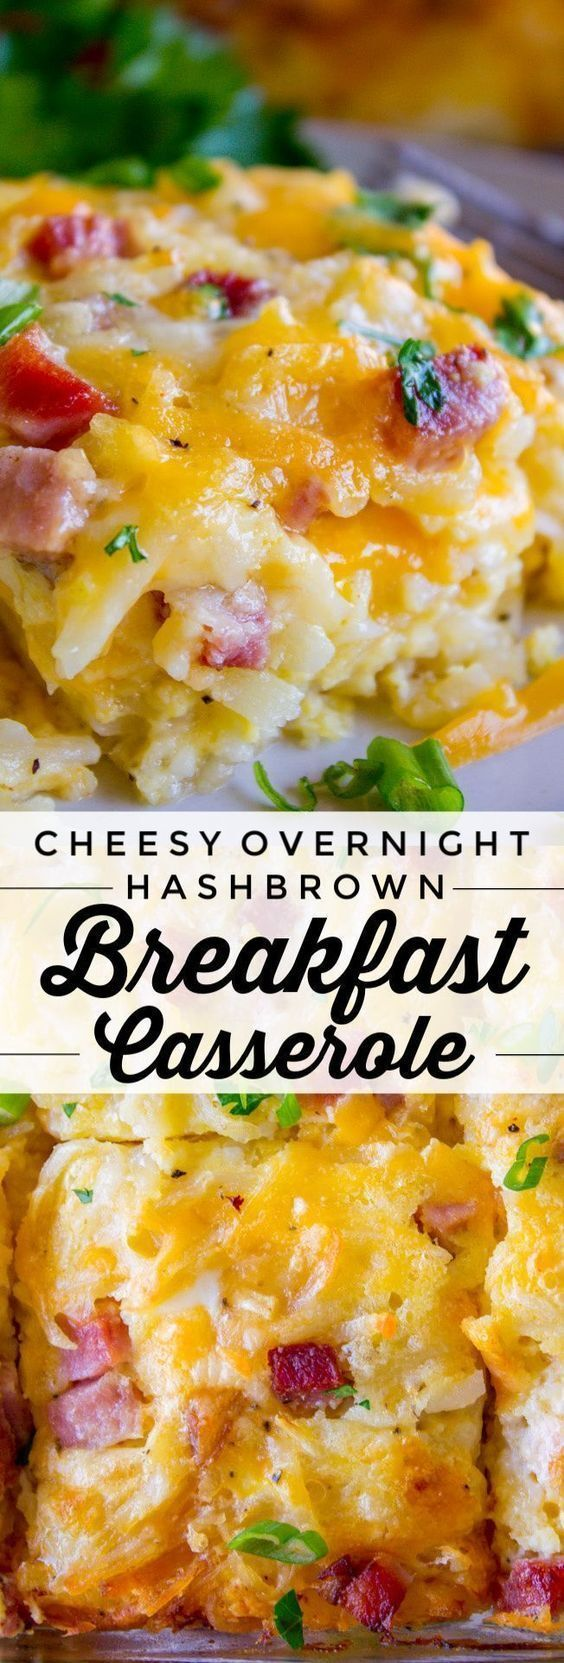 Cheesy Overnight Hashbrown Breakfast Casserole from The Food Charlatan. This Cheesy Hashbrown